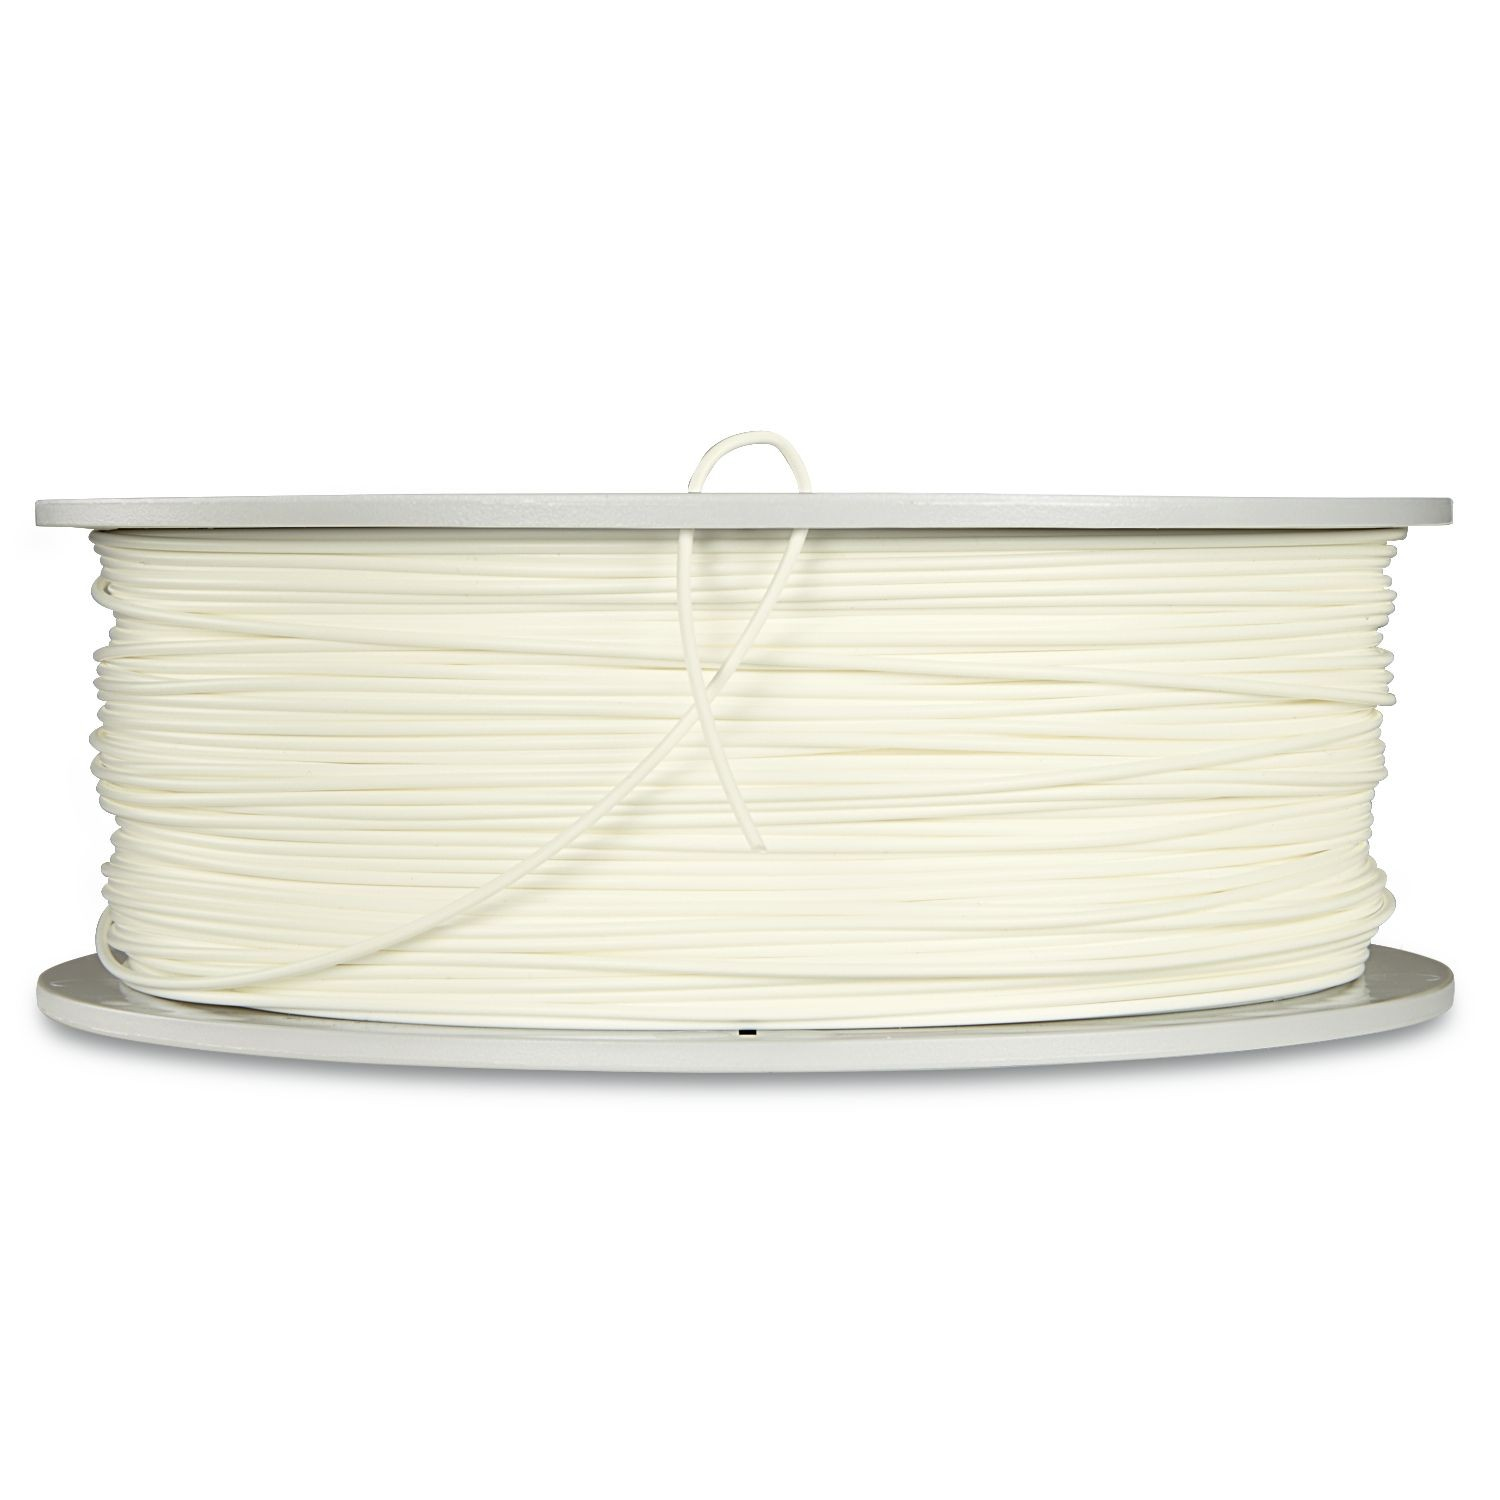 3d Printer Consumables White Verbatim 55268 Pla Filament 1.75mm 1kg